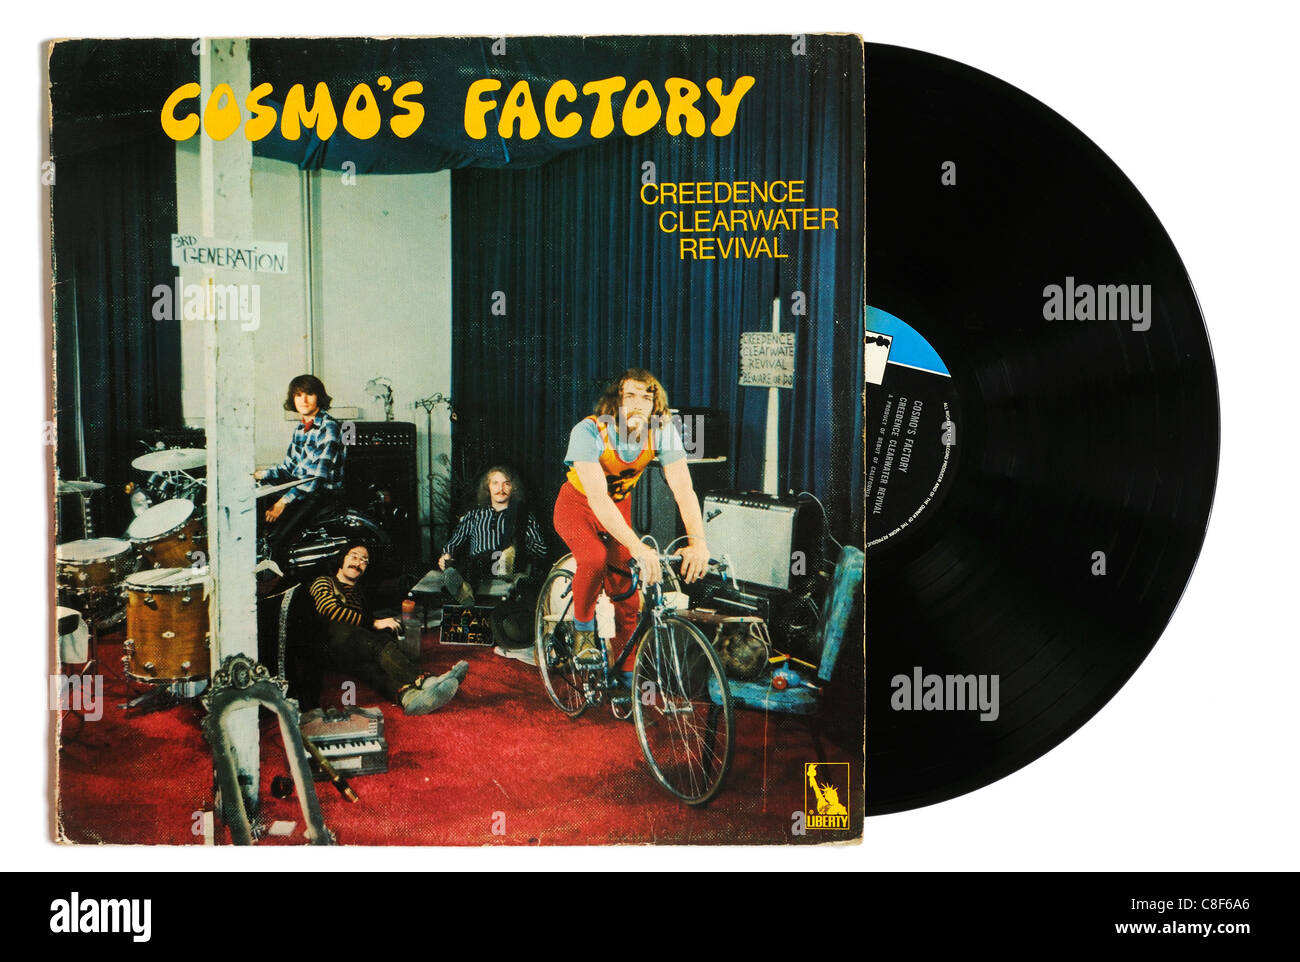 Creedence Clearwater Revival Cosmo's Factory album - Stock Image